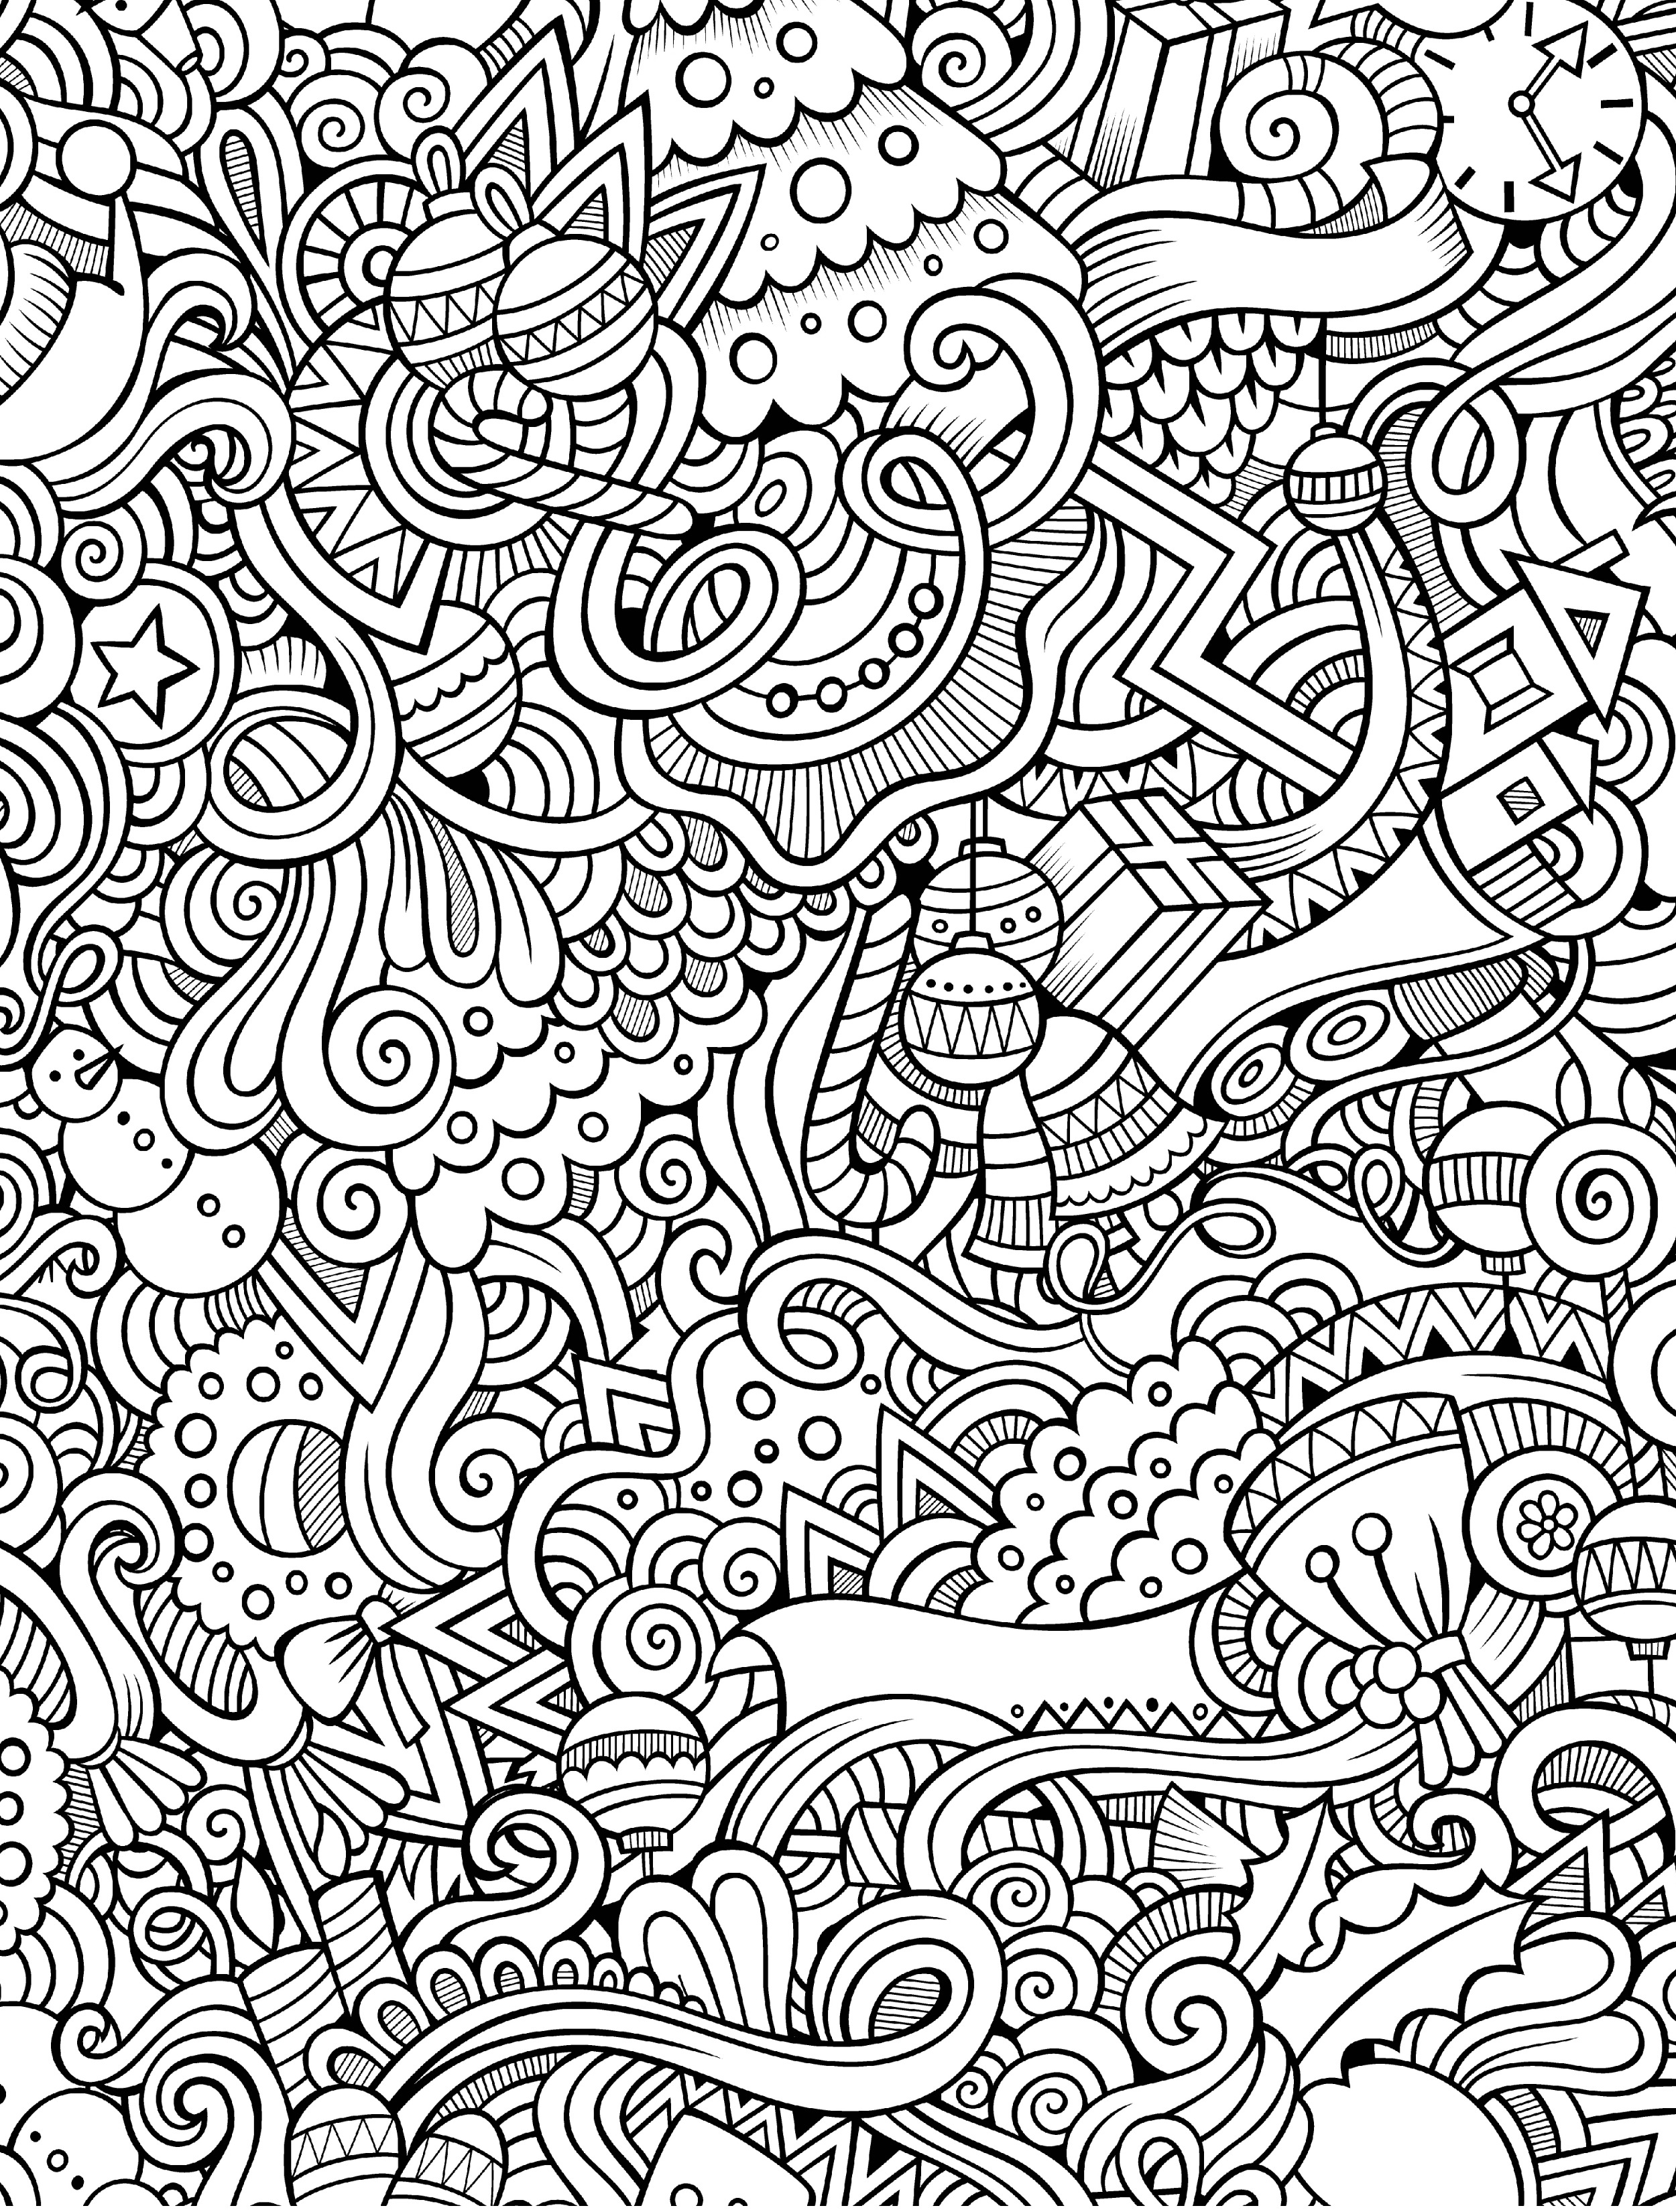 Free Coloring Pages Com Christmas With 10 Printable Holiday Adult